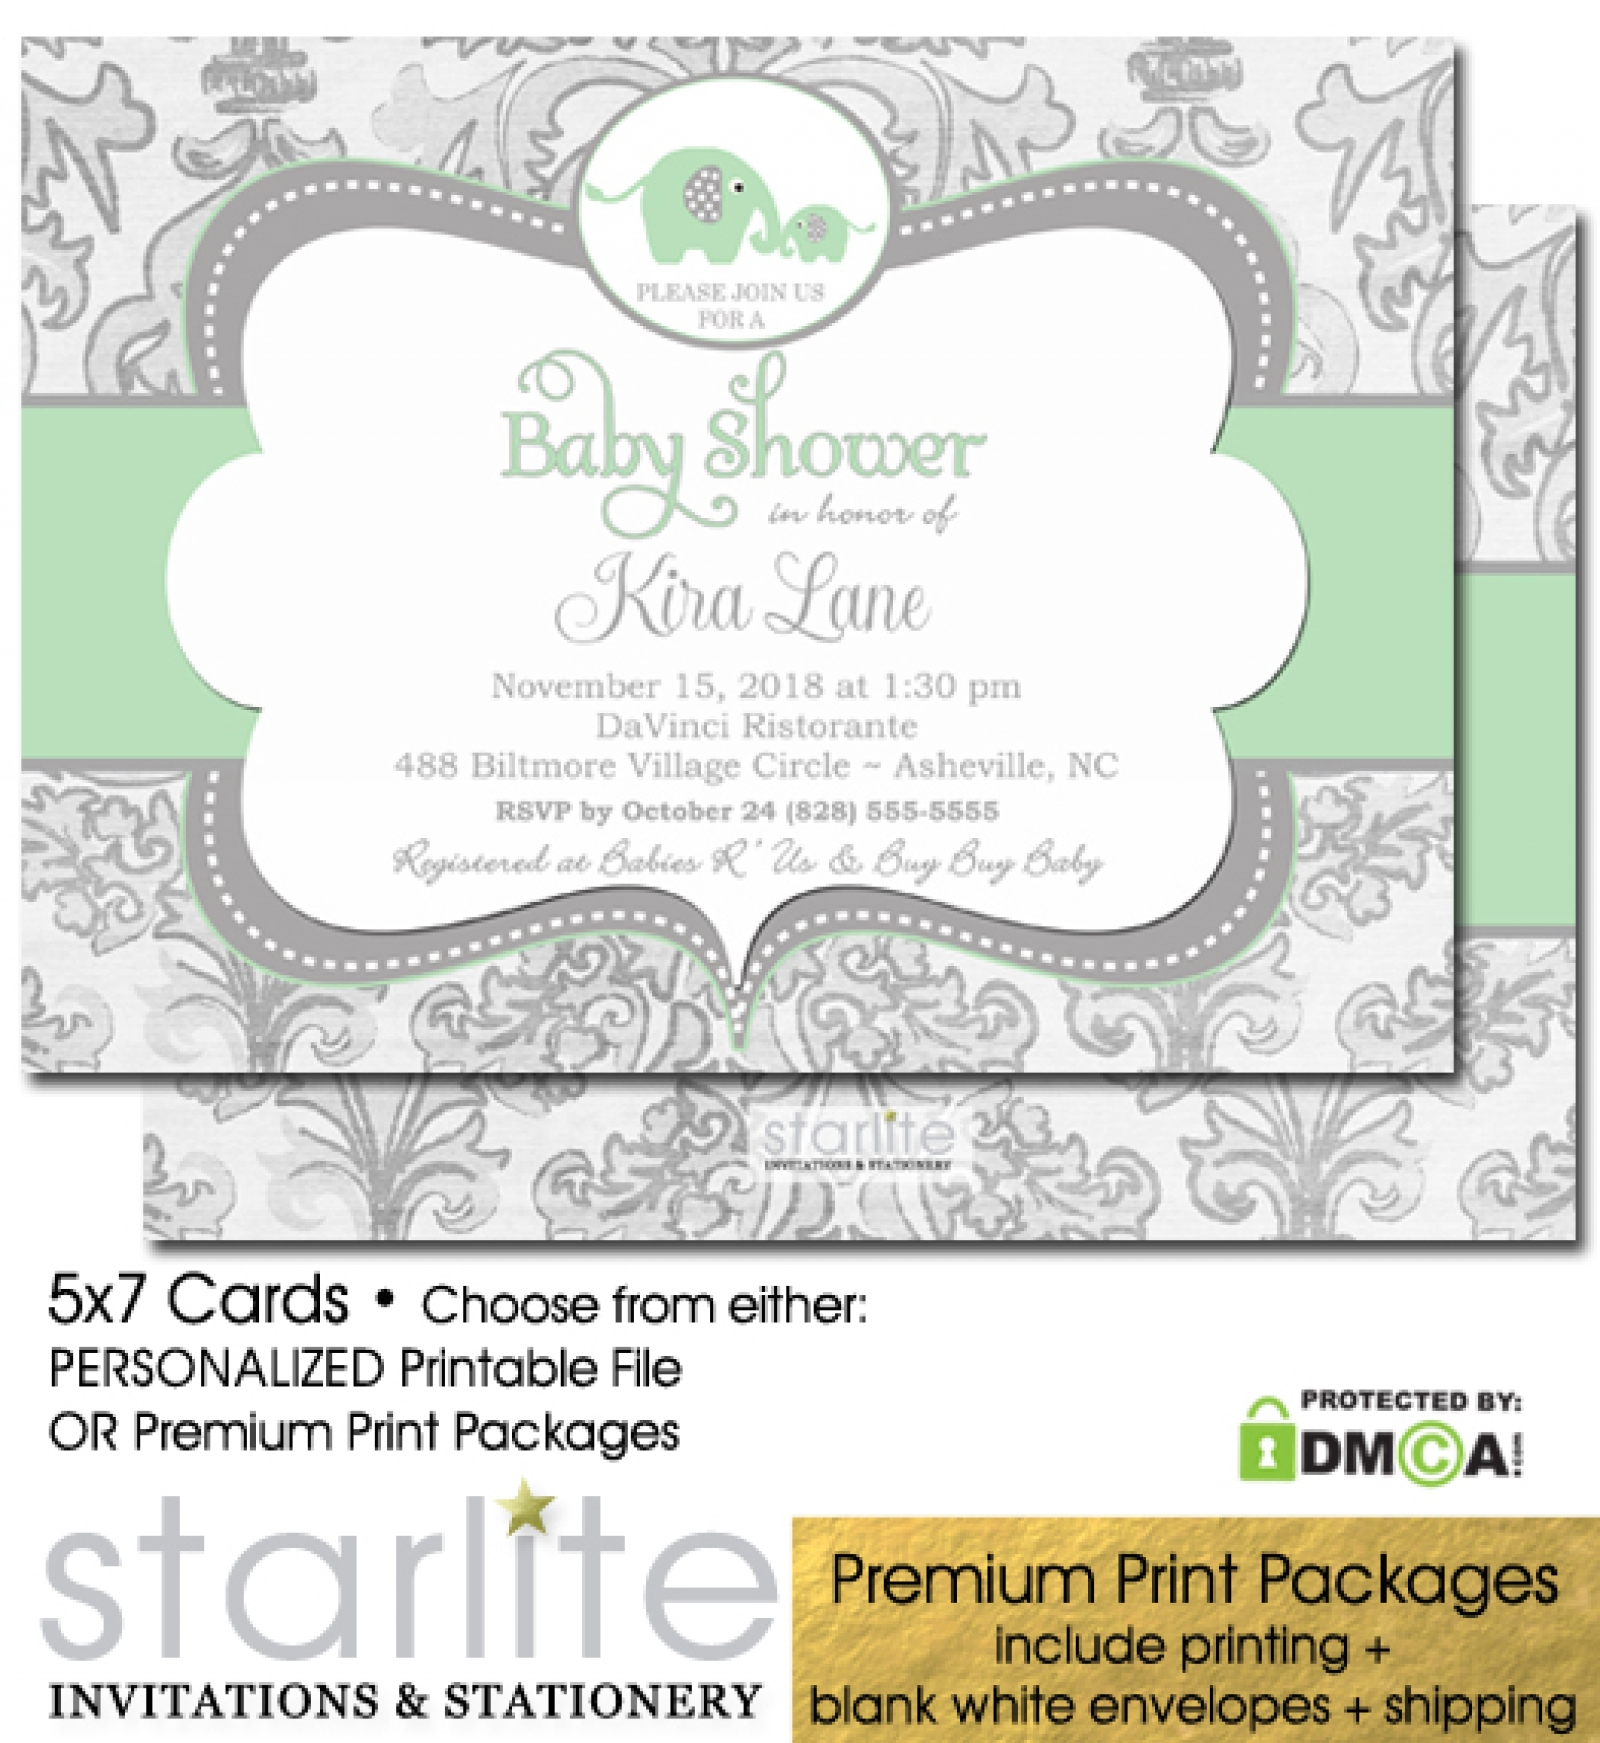 Full Size of Baby Shower:inspirational Elephant Baby Shower Invitations Photo Concepts Baby Shower Cards For Boy With Baby Shower Flower Wall Plus Baby Shower Seat Together With Baby Shower Game Ideas